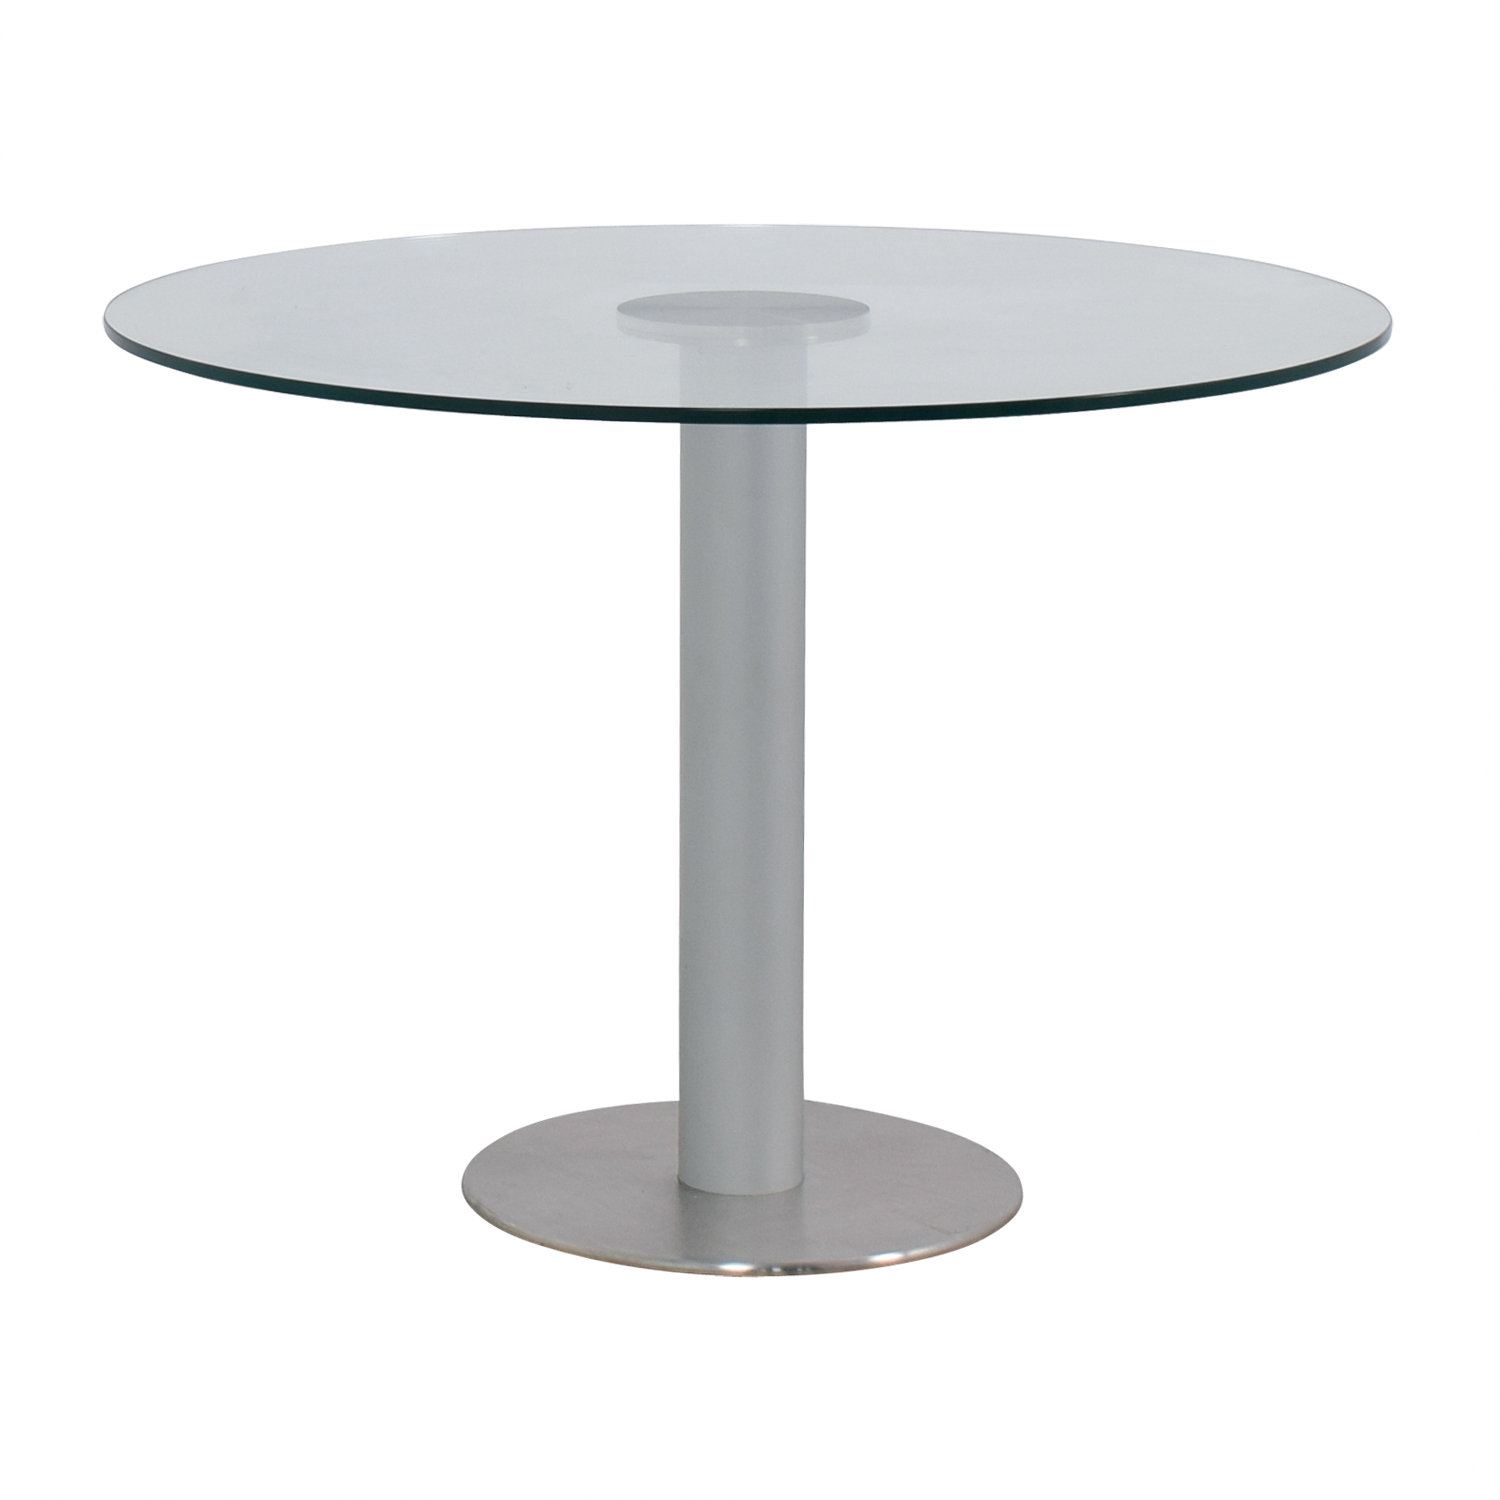 Stua Design Furniture Stua Design Furniture Zero Glass and Chrome Table discount